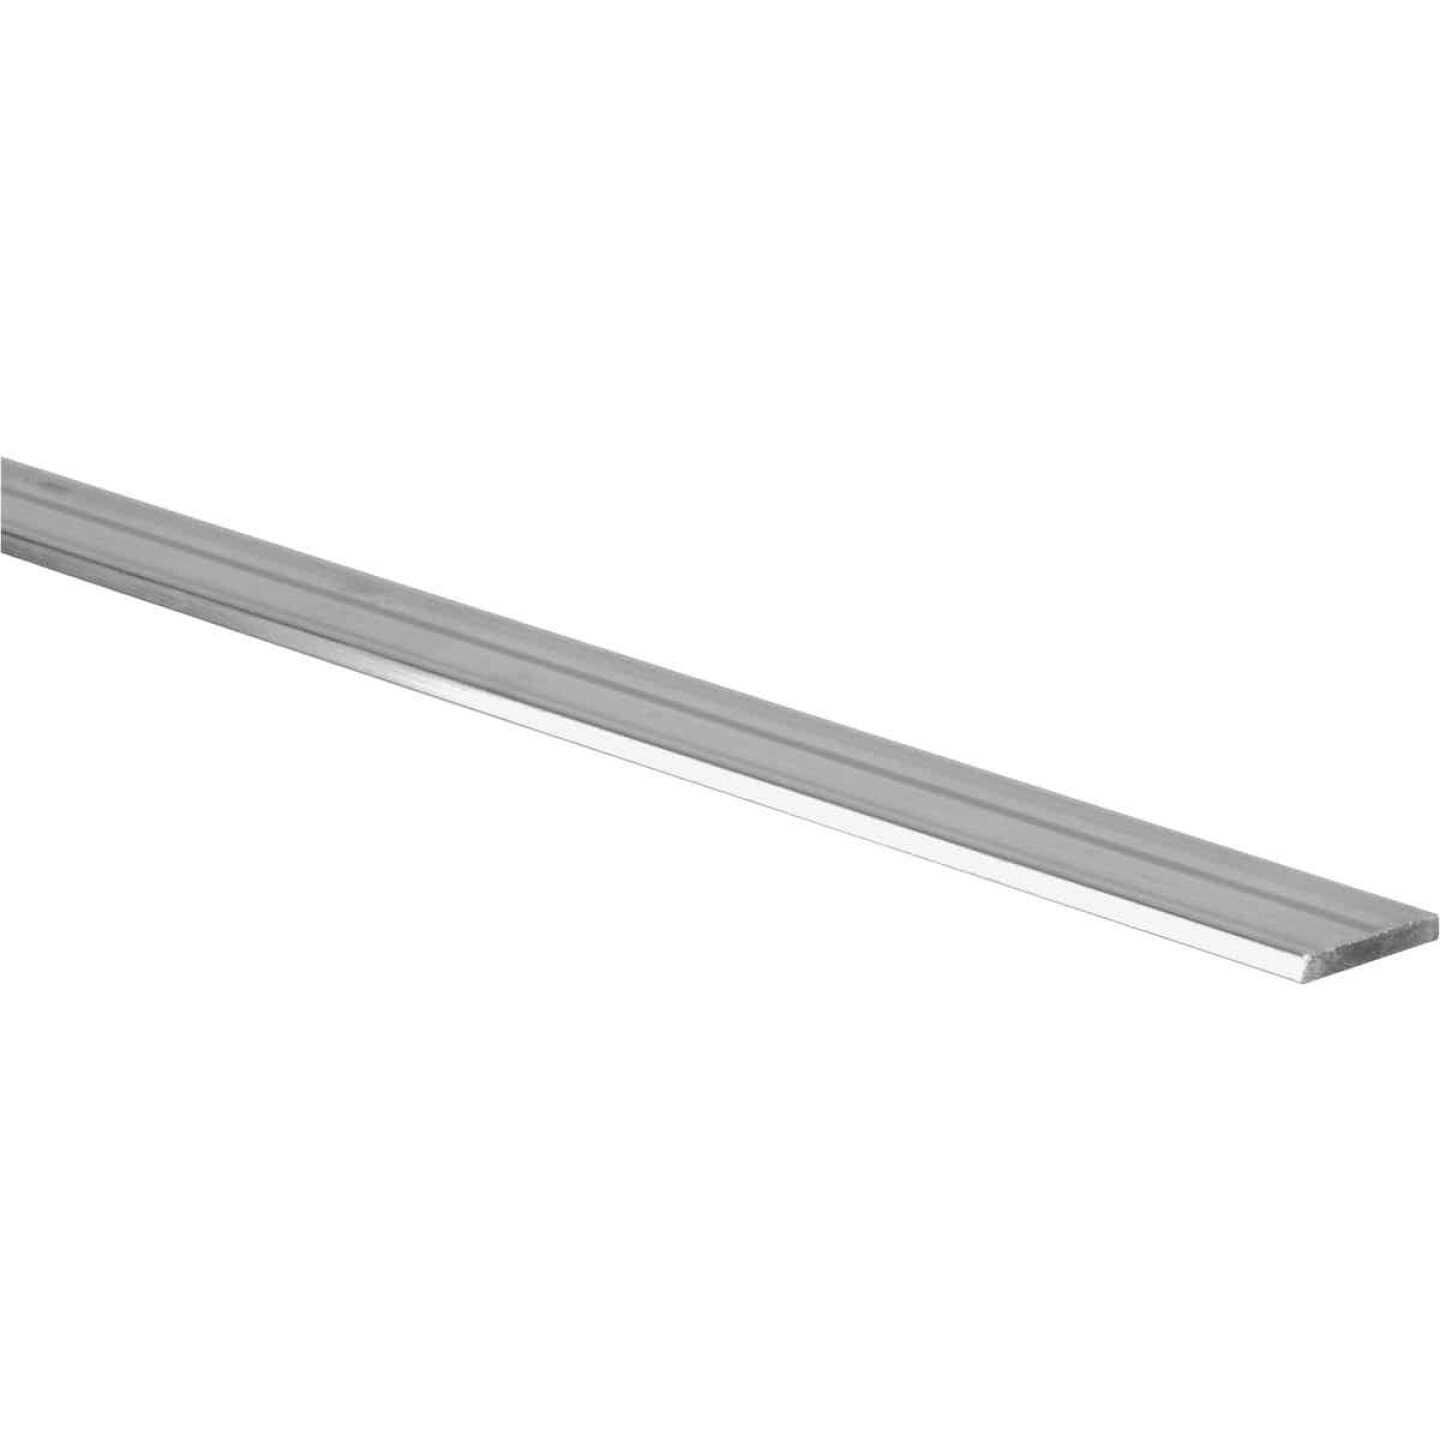 Hillman Steelworks 1 In. x 8 Ft. x 1/4 In. Aluminum Bar Flat Stock Image 1